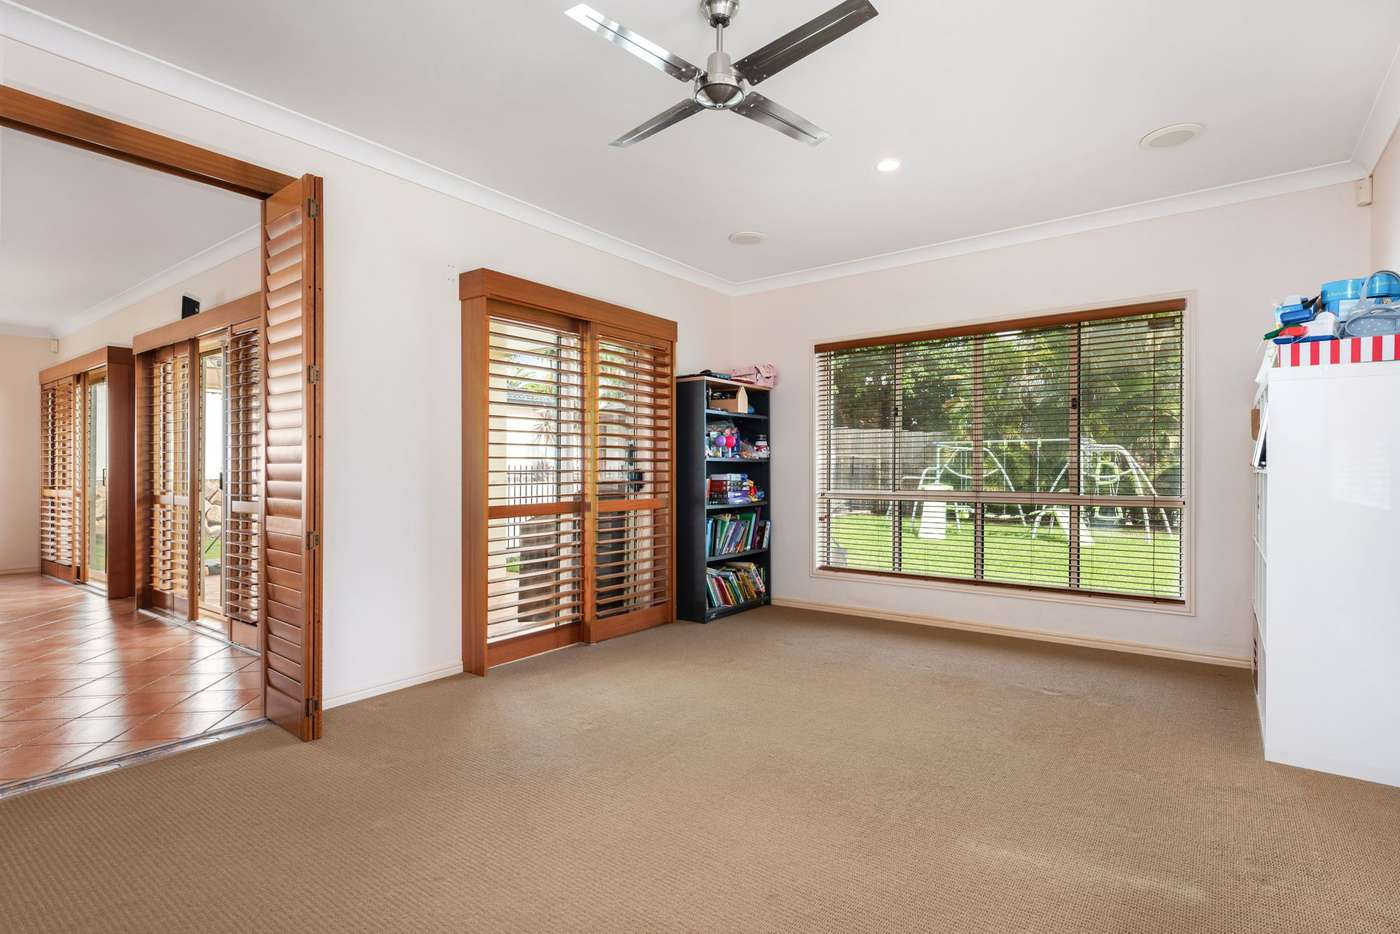 Sixth view of Homely house listing, 39 Sunset Place, Carindale QLD 4152